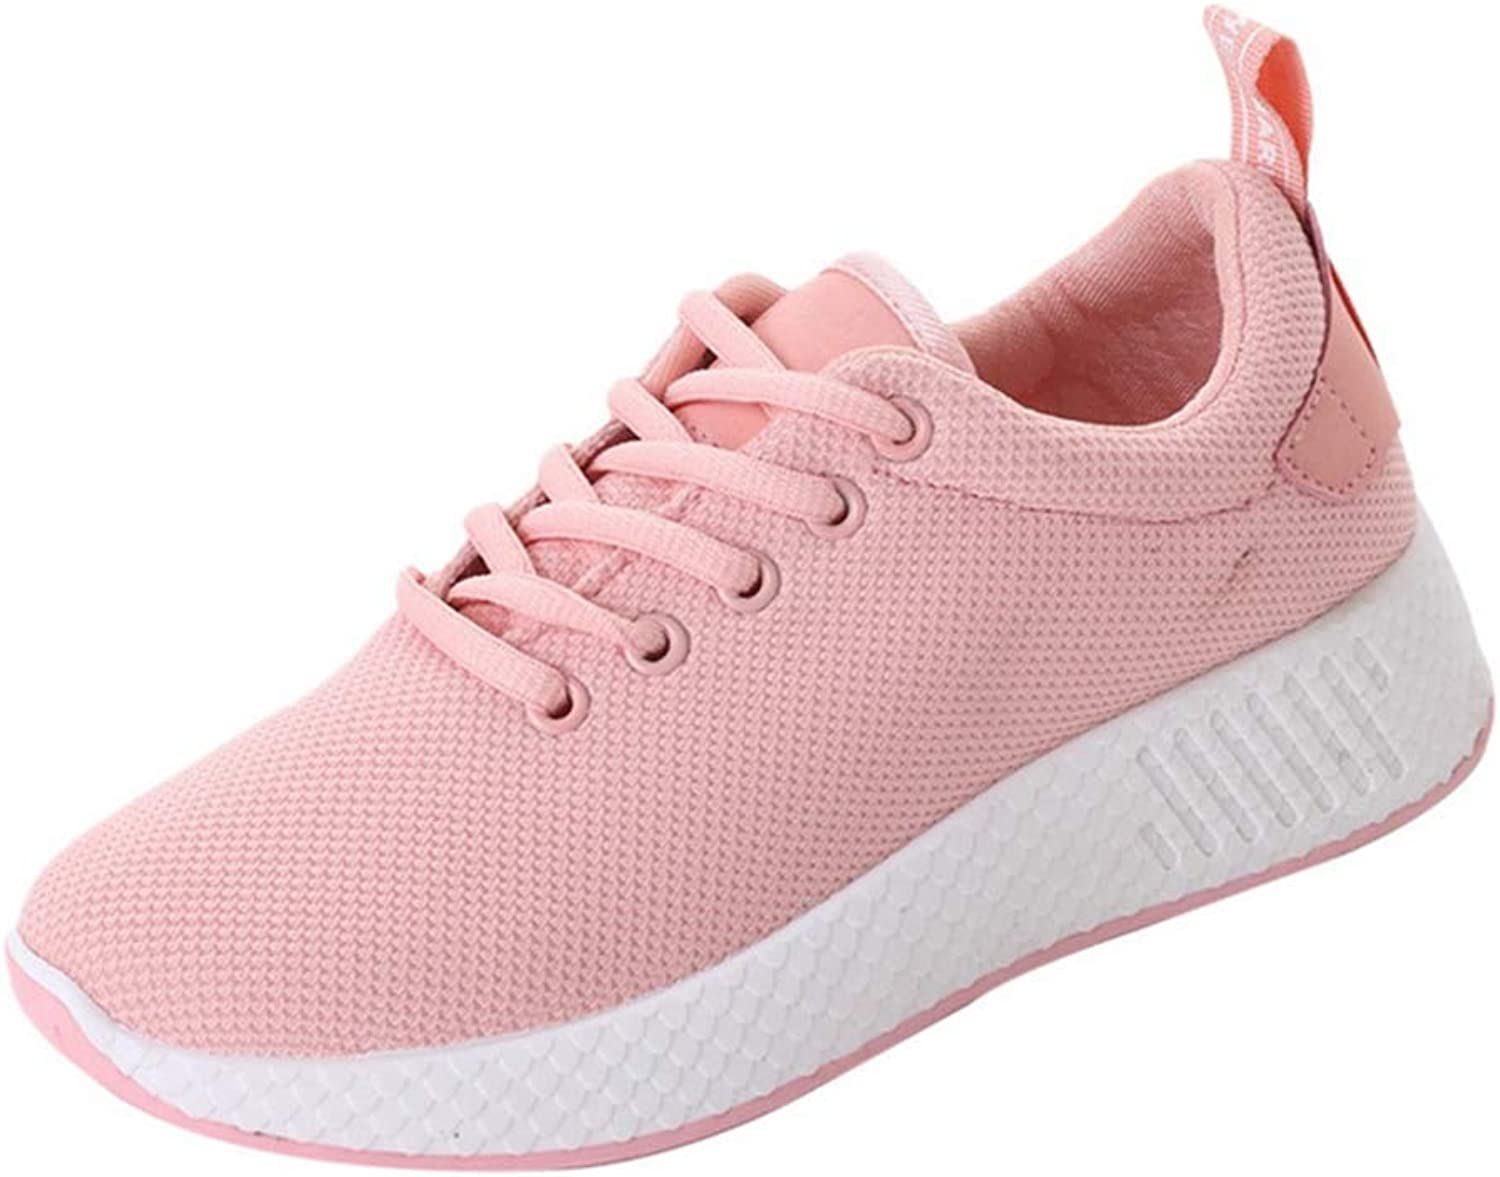 Wallhewb Women Wedges Platform Sneakers New Vulcanize Sports shoes Female Breathable Casual Mesh Cloth shoes Leg Length Comfortable Soft Highten Increasing Joker White 7 M US Sports shoes